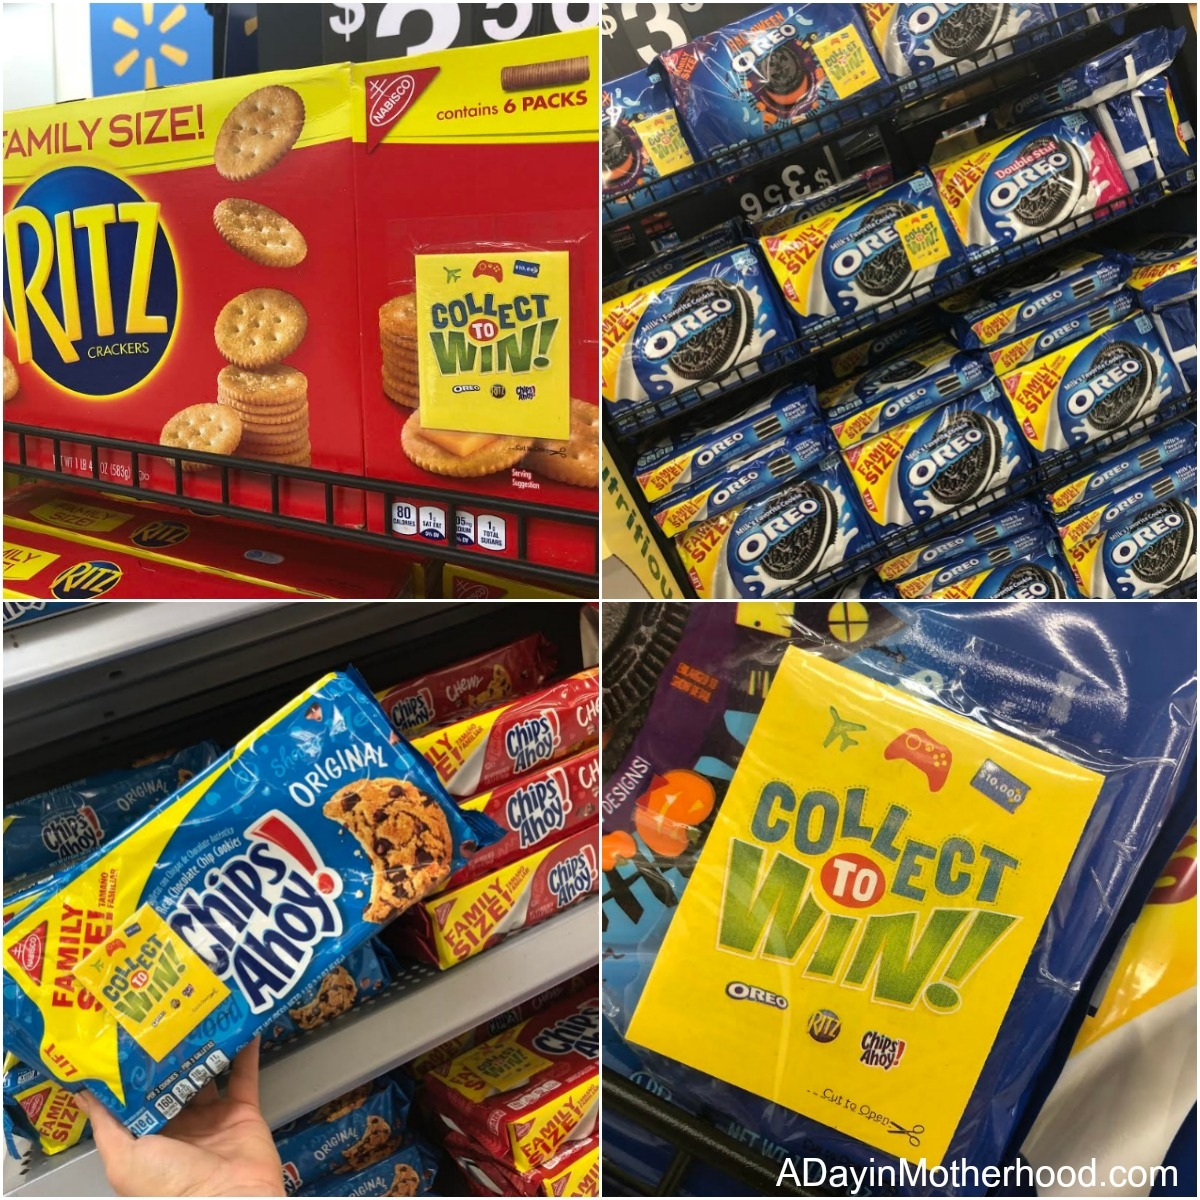 Play Collect to WIN AND Enter the Sweepstakes too: From OREO, RITZ and Chips Ahoy! on Walmart Shelves